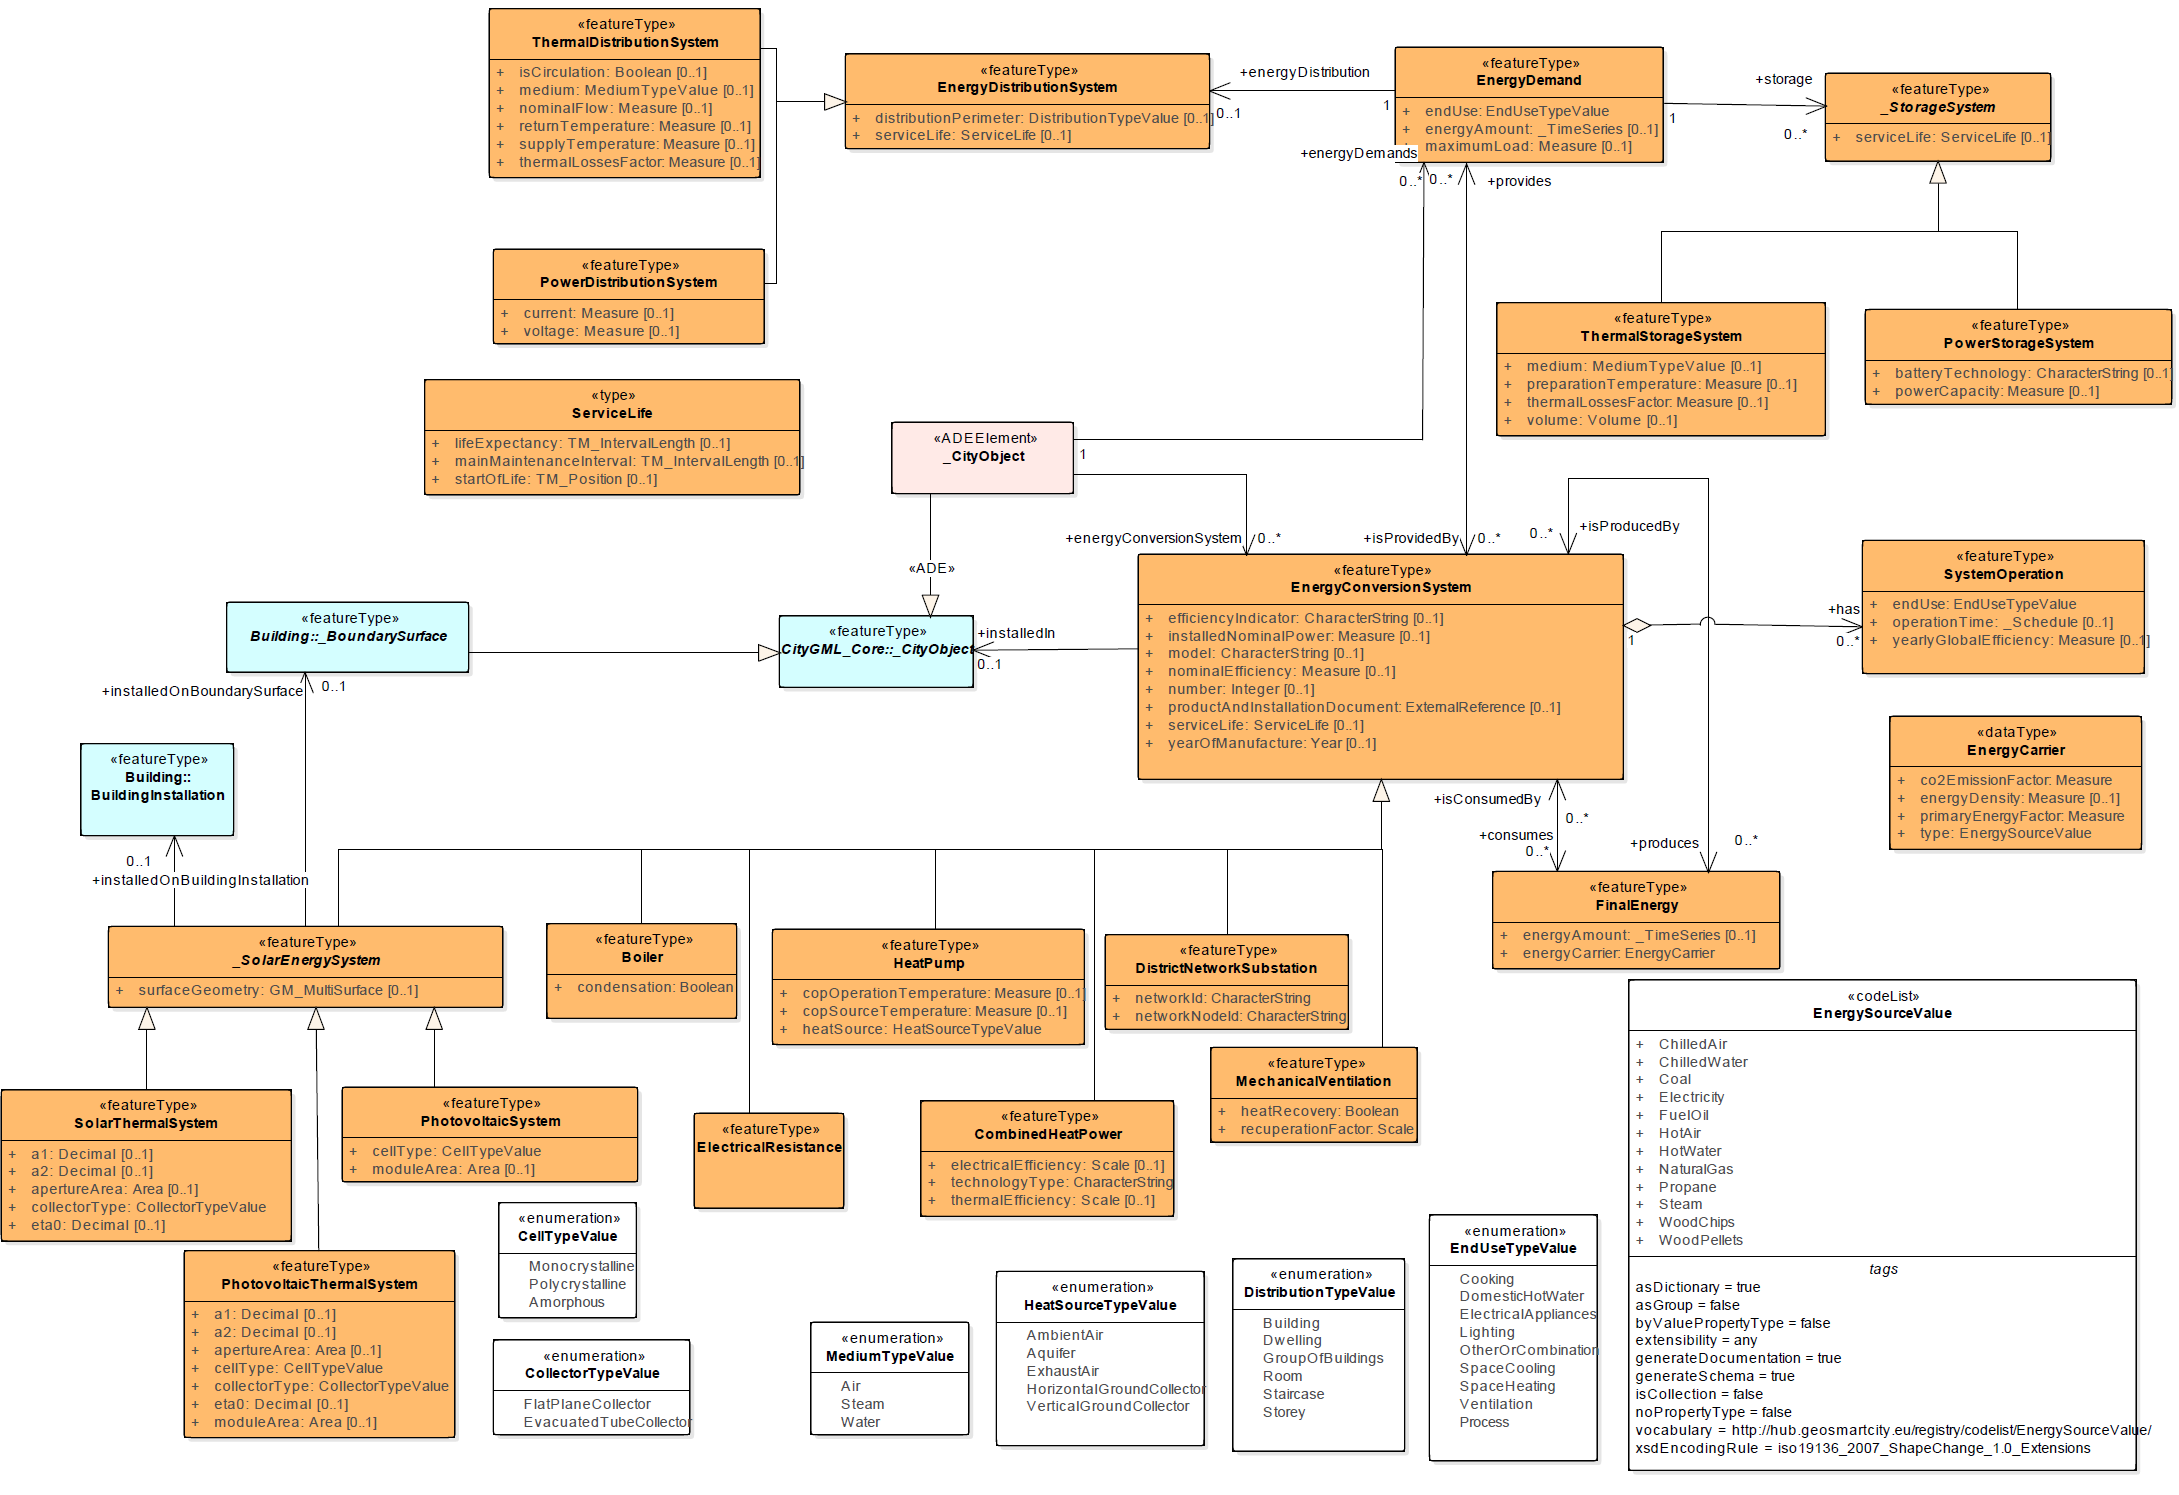 doc/guidelines/fig/Systems.png